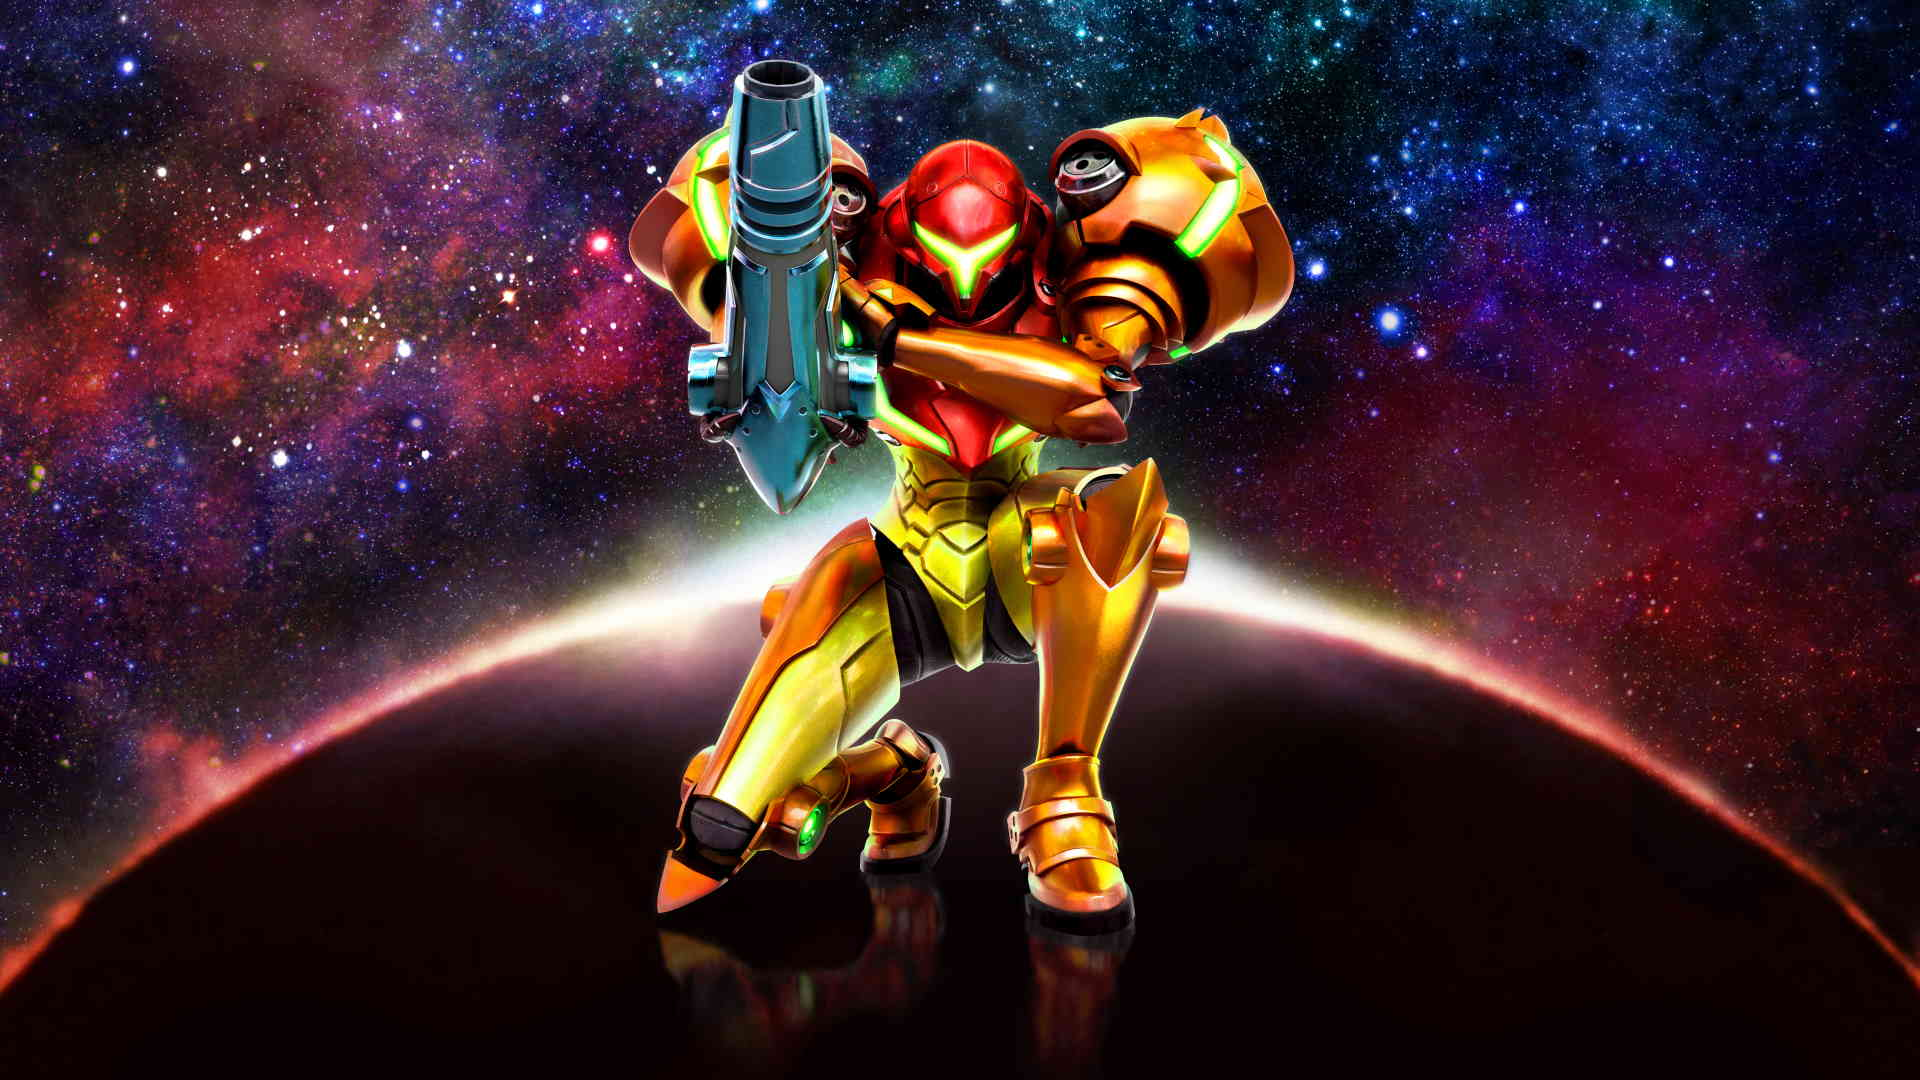 Metroid and Samus: Linear or open